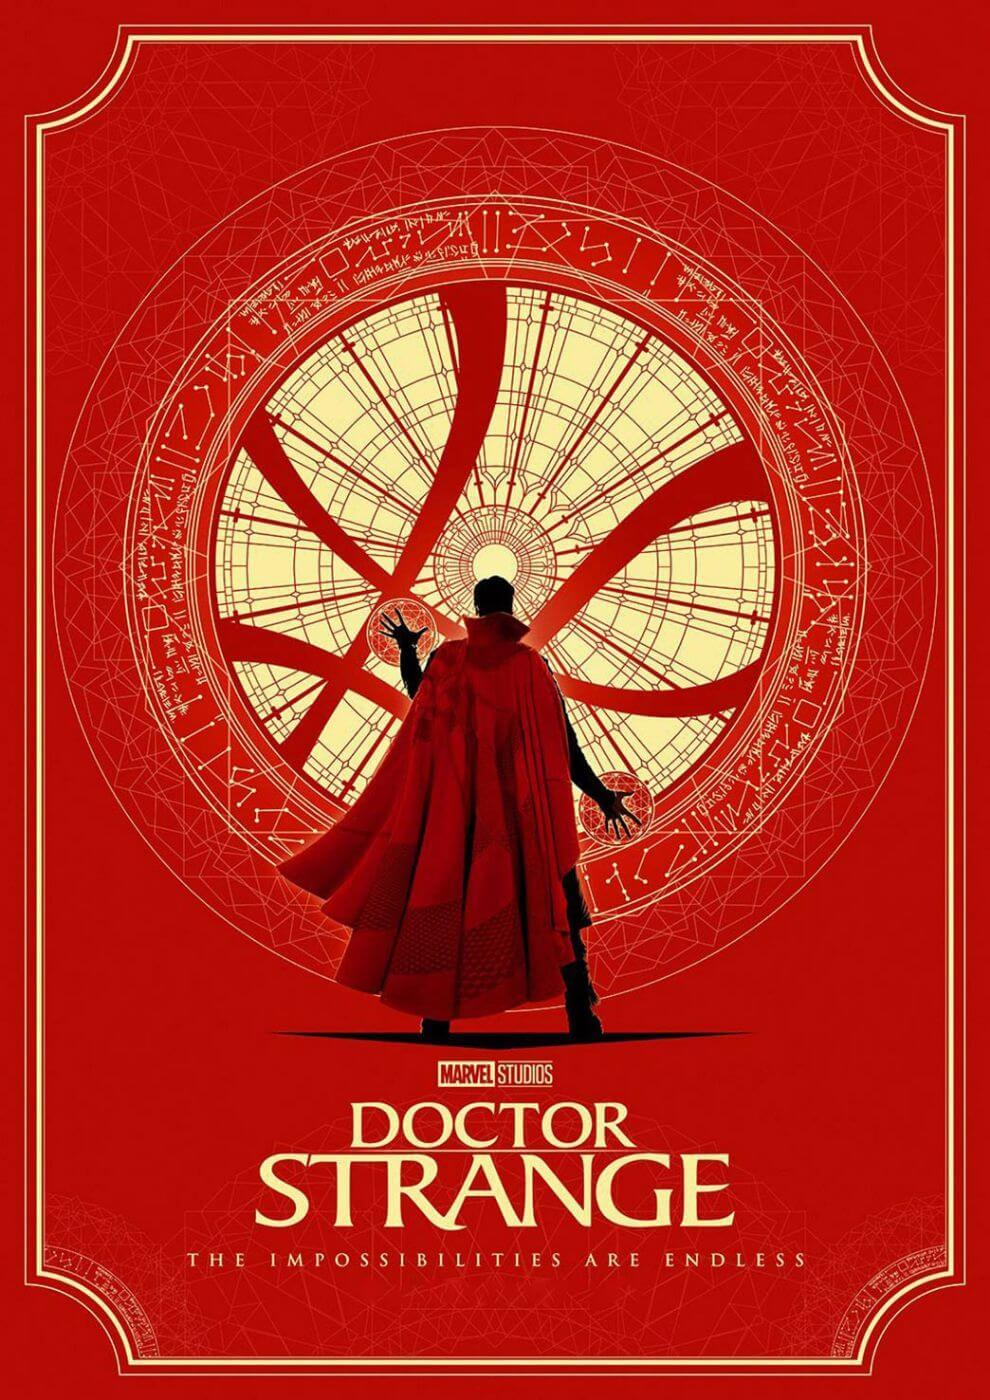 Movie Poster Fan Art Doctor Strange Tallenge Hollywood Superhero Poster Collection Art Prints By Tim Buy Posters Frames Canvas Digital Art Prints Small Compact Medium And Large Variants